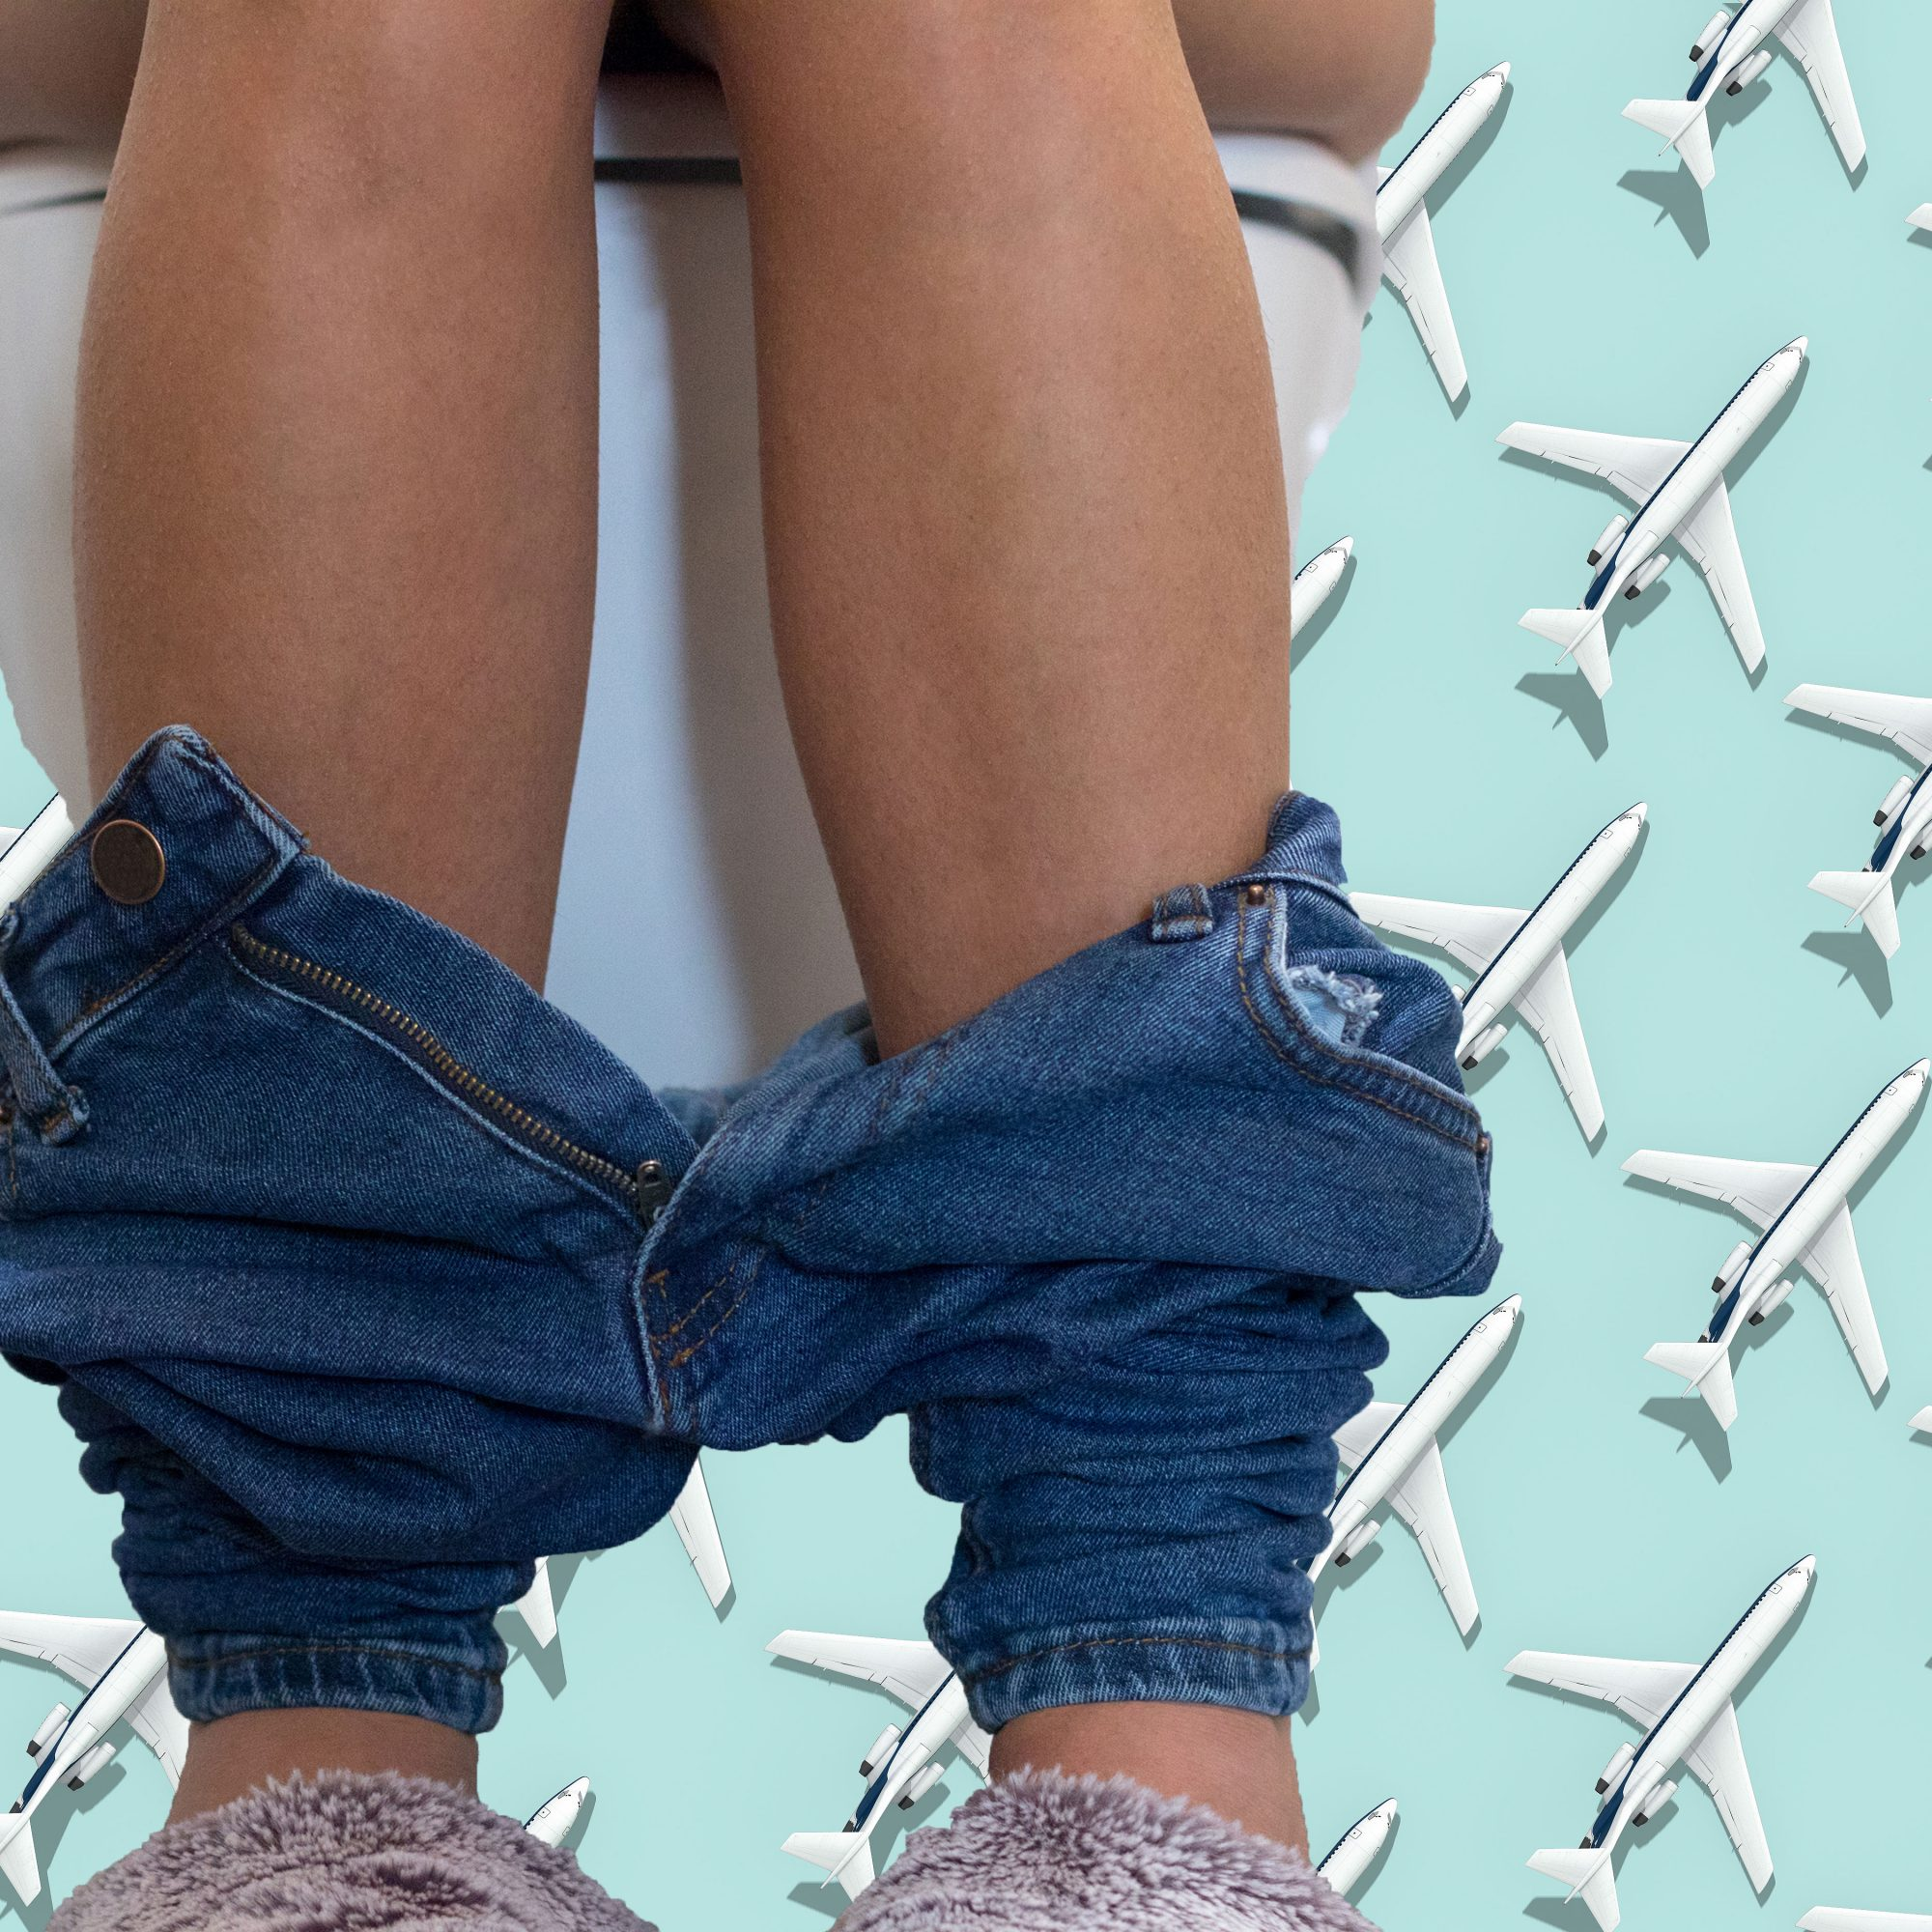 Close_Up_Of_Woman's_Legs_On_Toilet